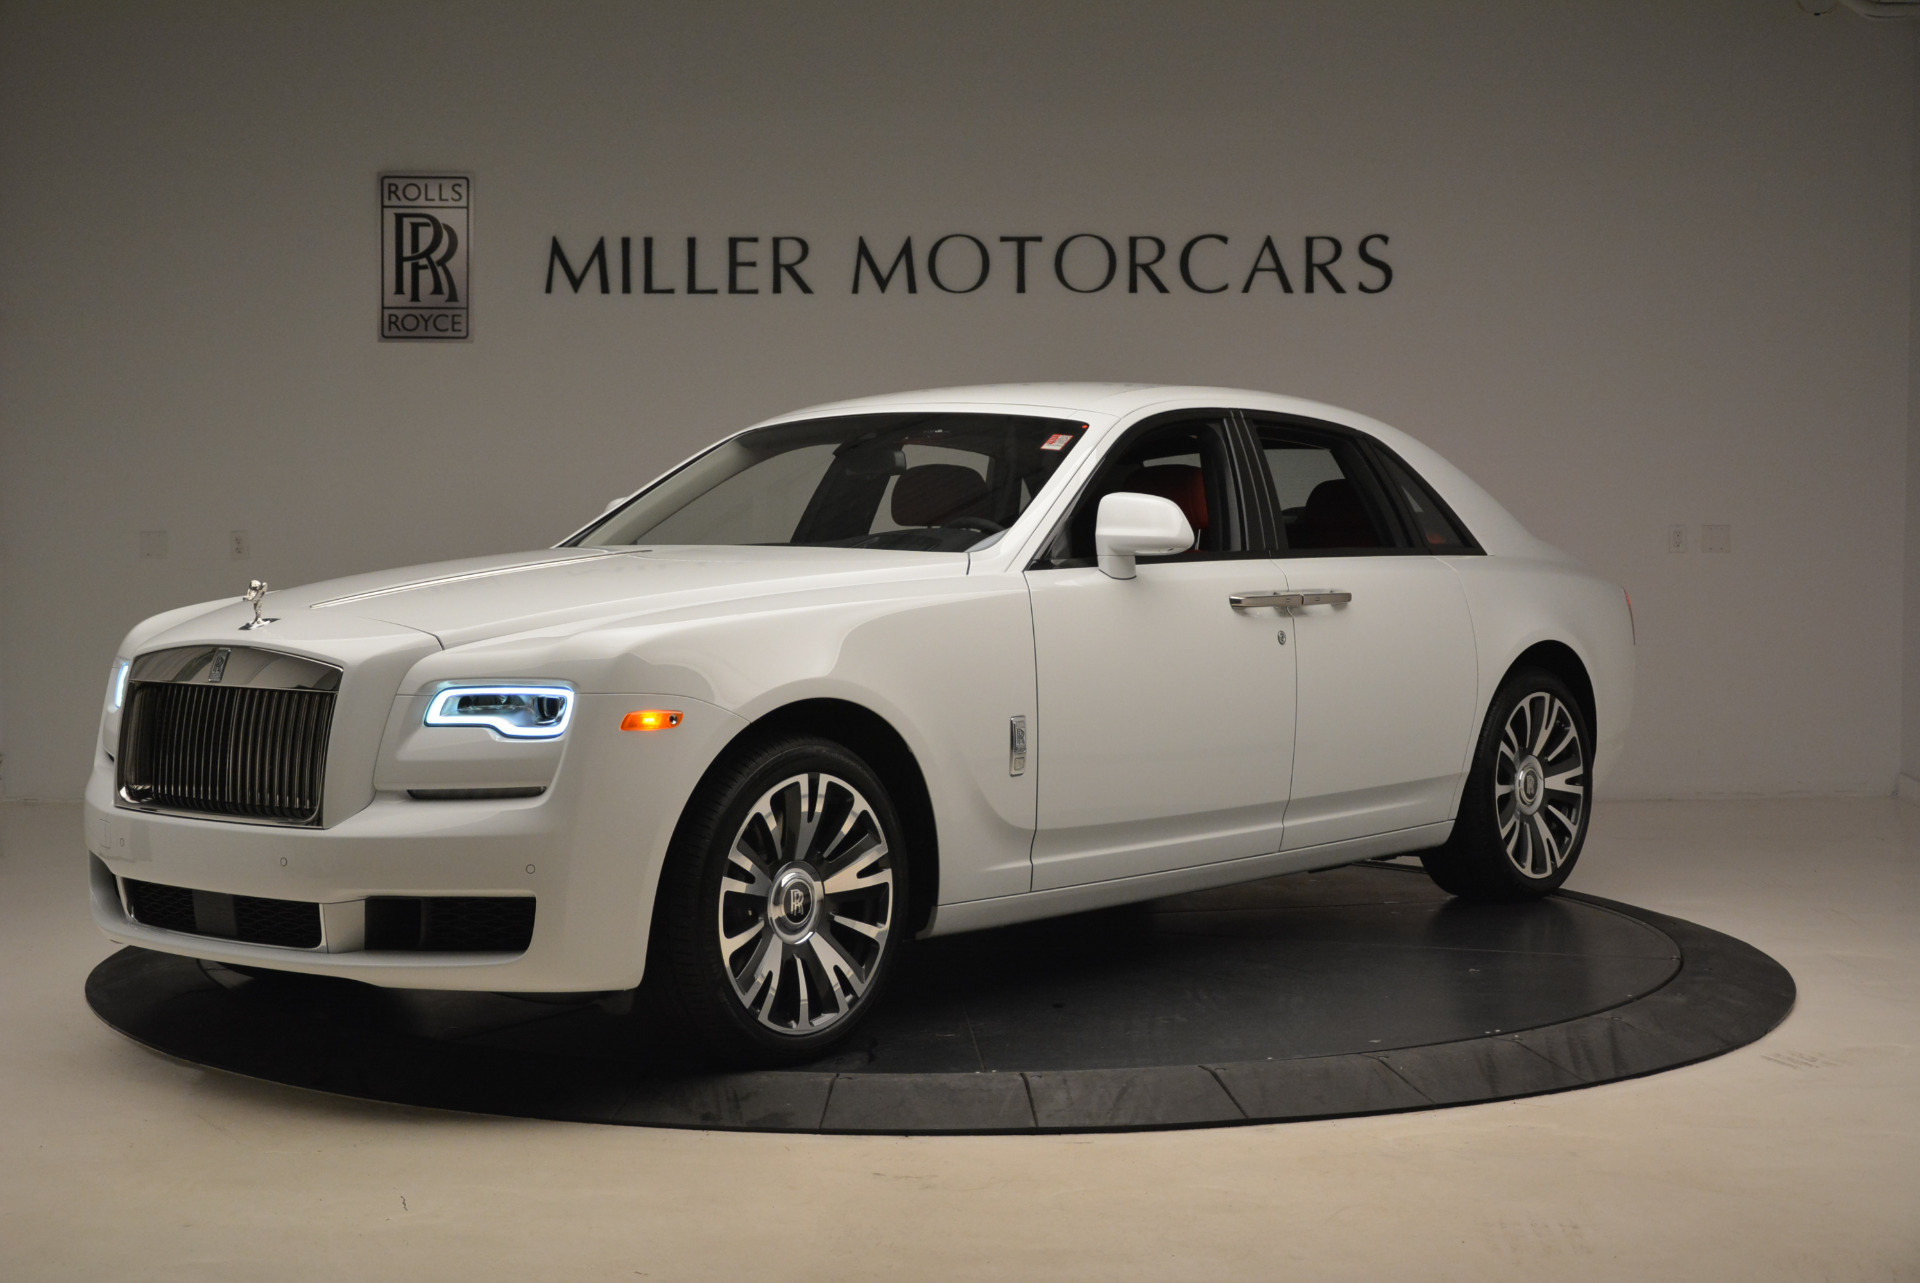 New 2018 Rolls-Royce Ghost for sale Sold at Bentley Greenwich in Greenwich CT 06830 1